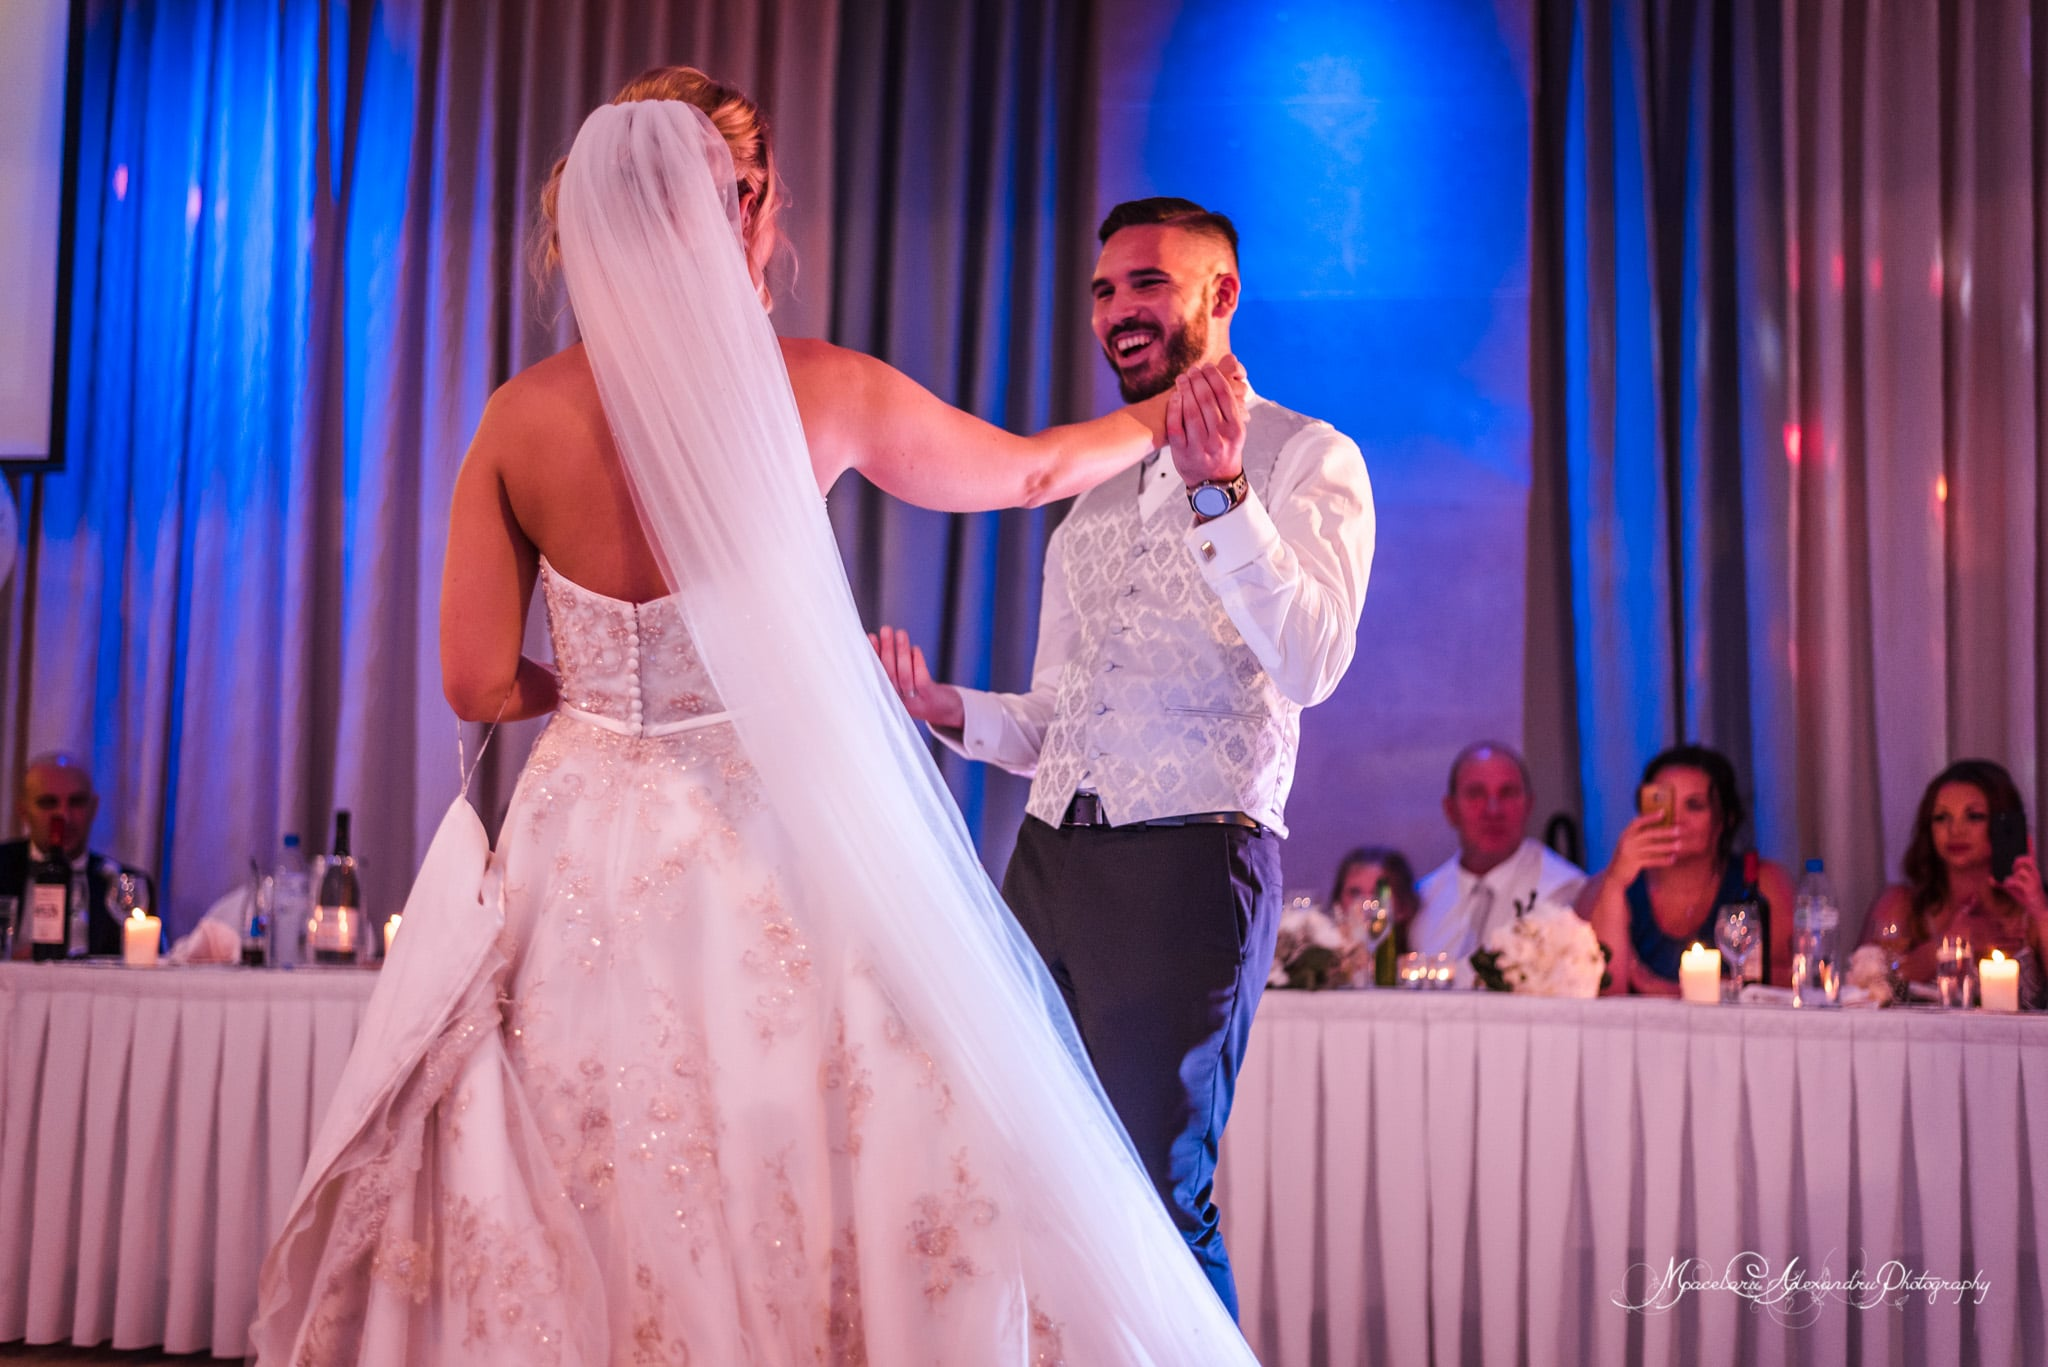 Wedding photography in Paphos - Bride and groom dancing